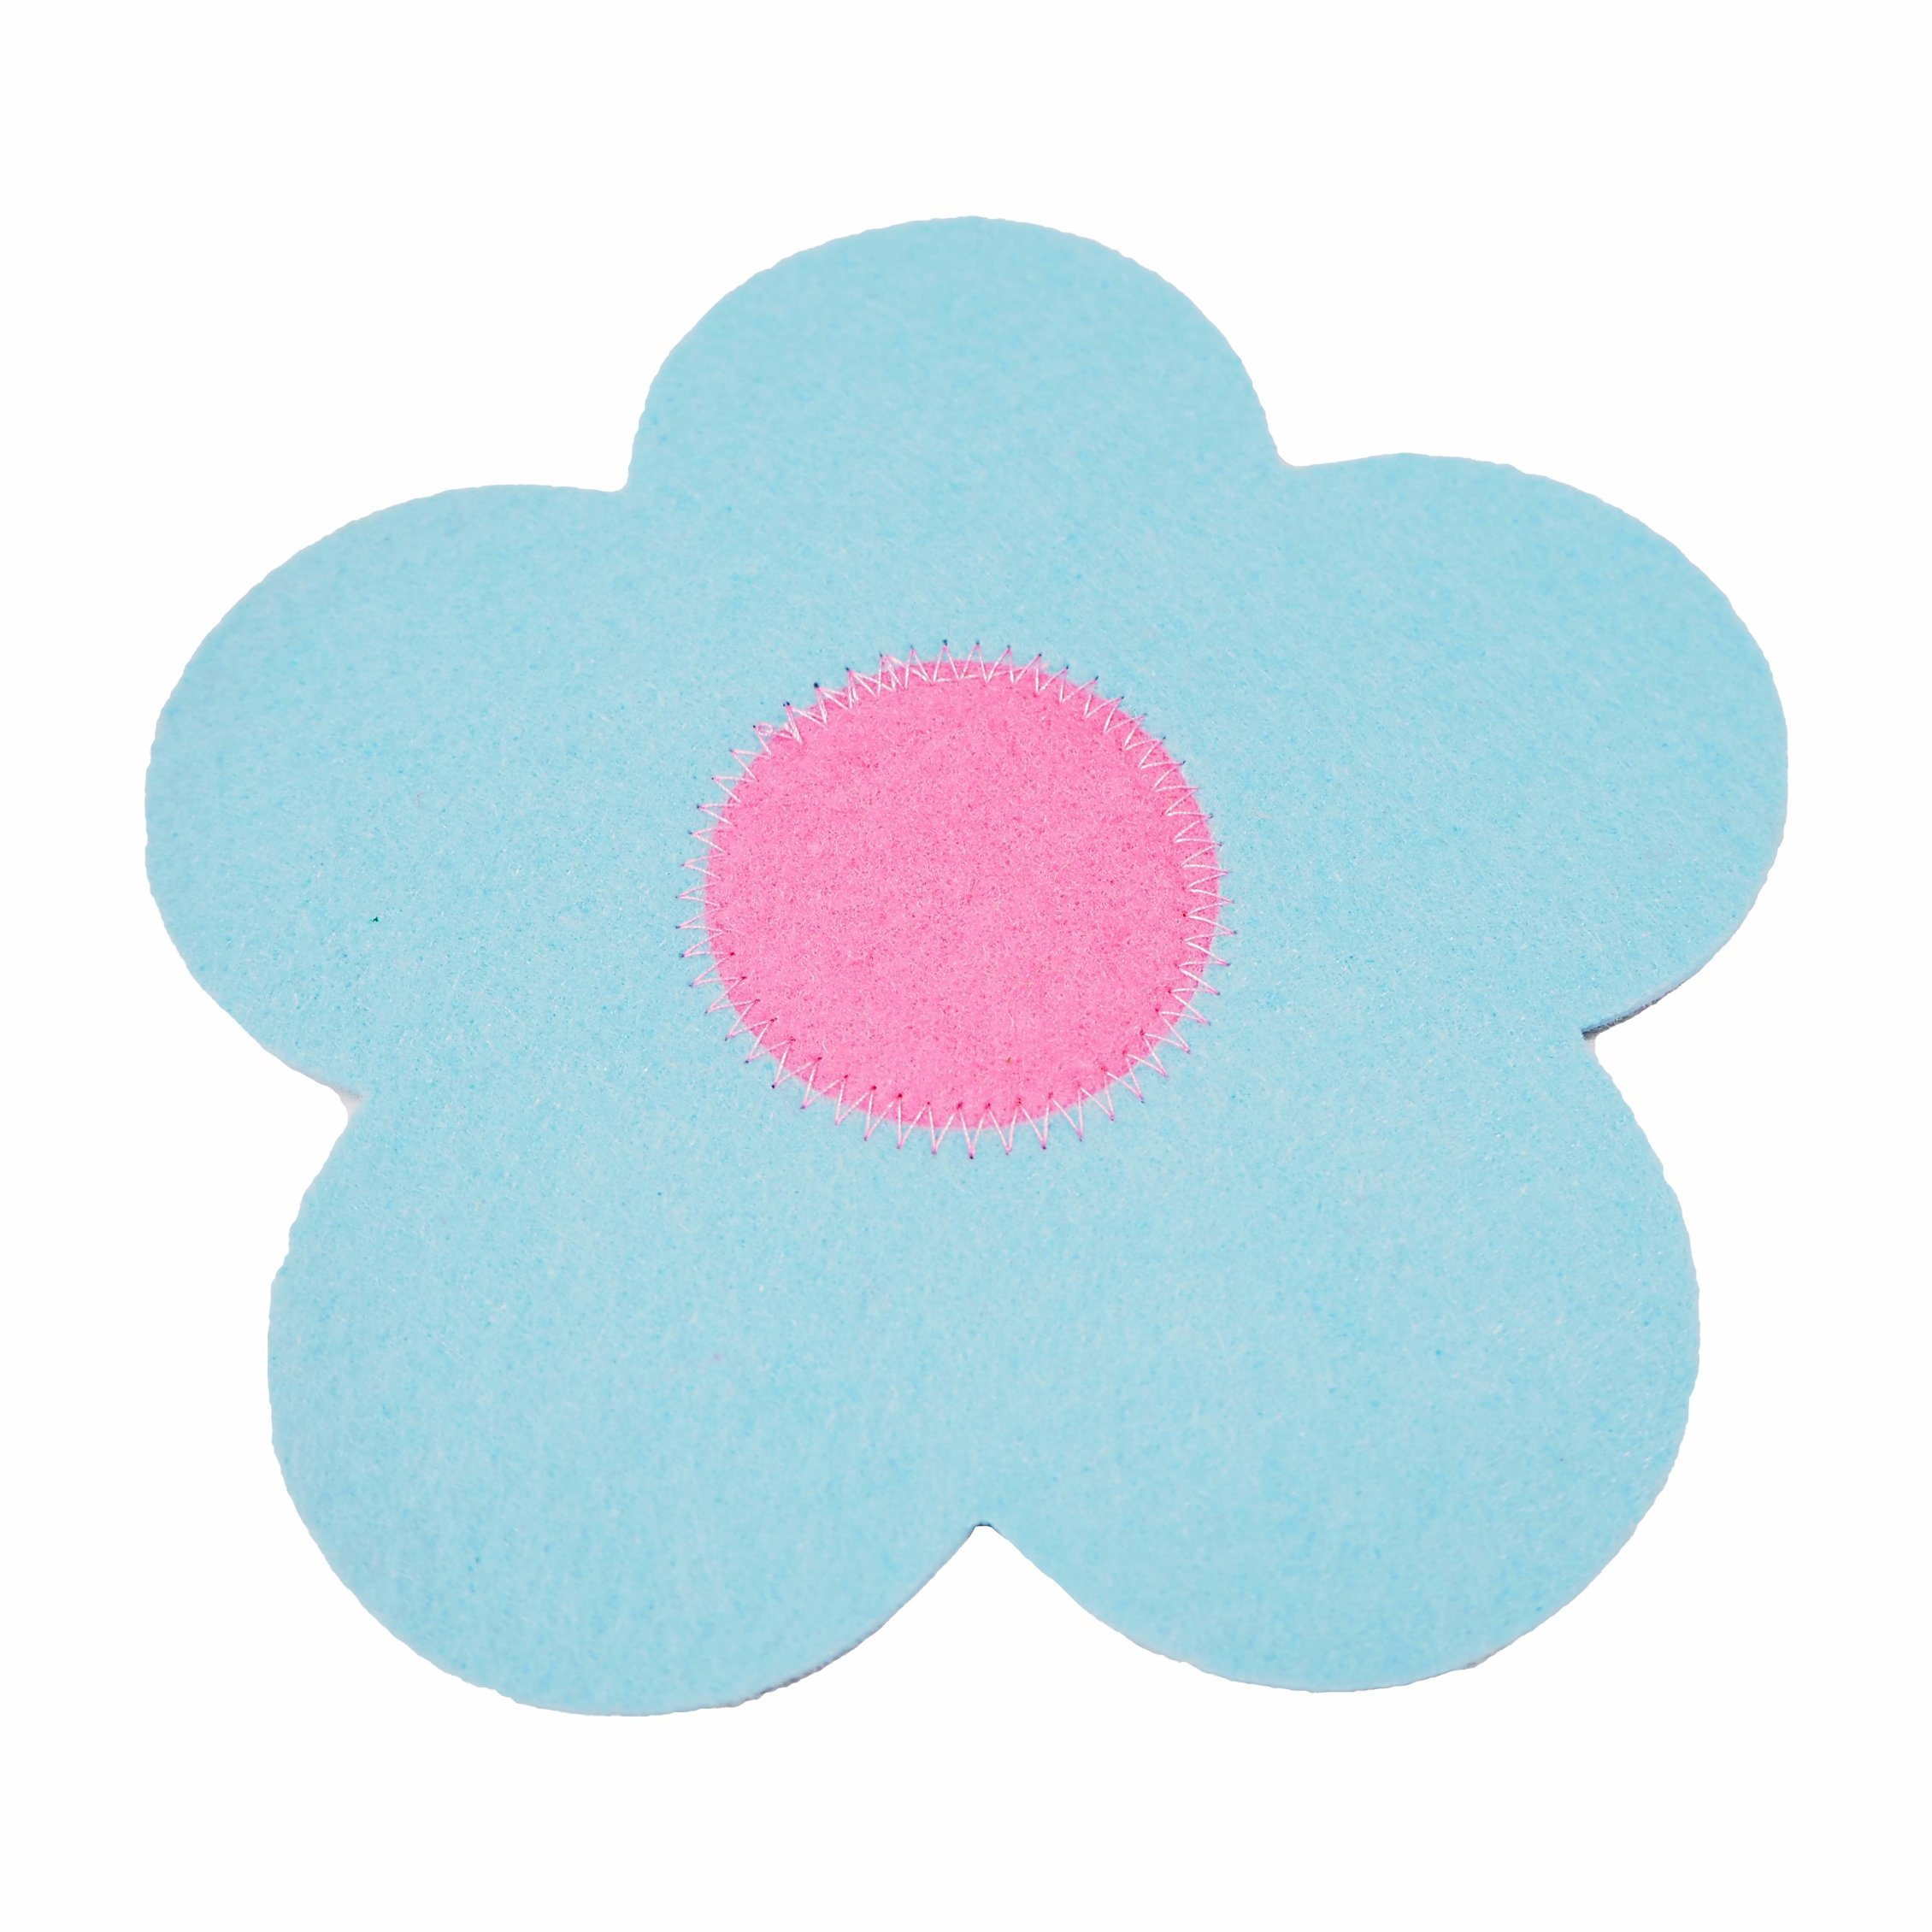 Colorful 100% Felt Sewing Coasters for Cups & Decorations